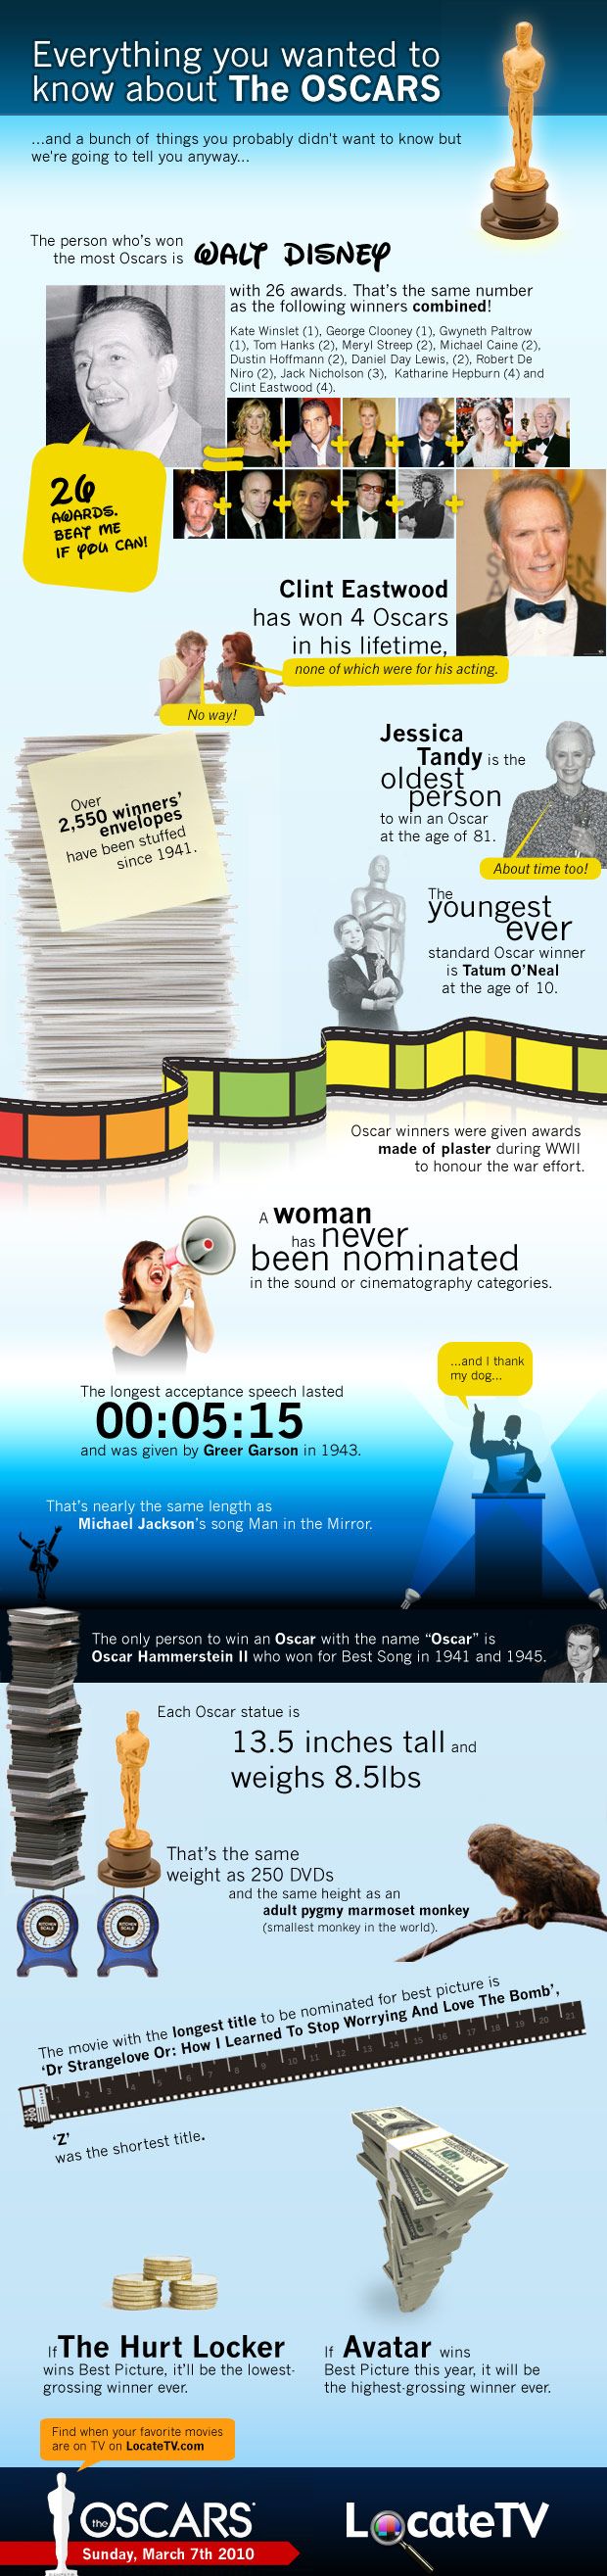 Everything you wanted to know about the Oscars (infographic)